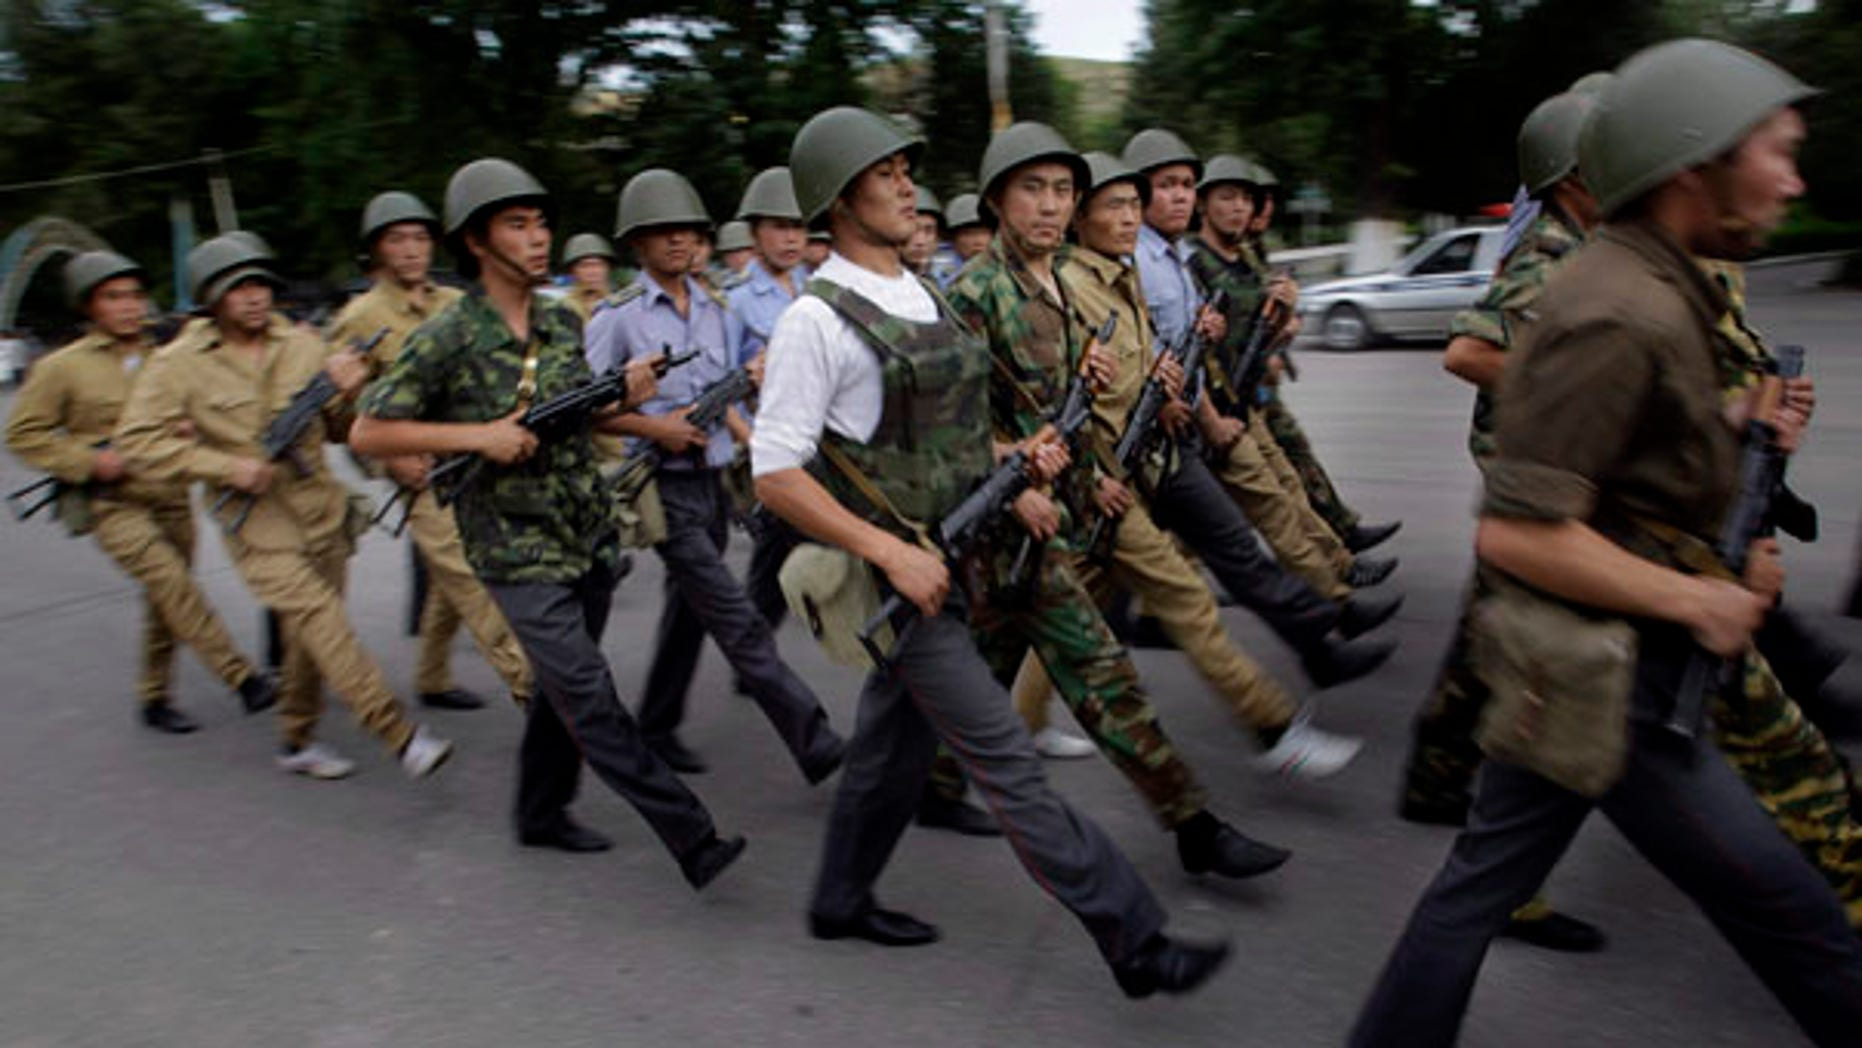 June 17: Kyrgyz police march during the evening guard in the southern Kyrgyz city of Jalal-Abad, Kyrgyzstan.